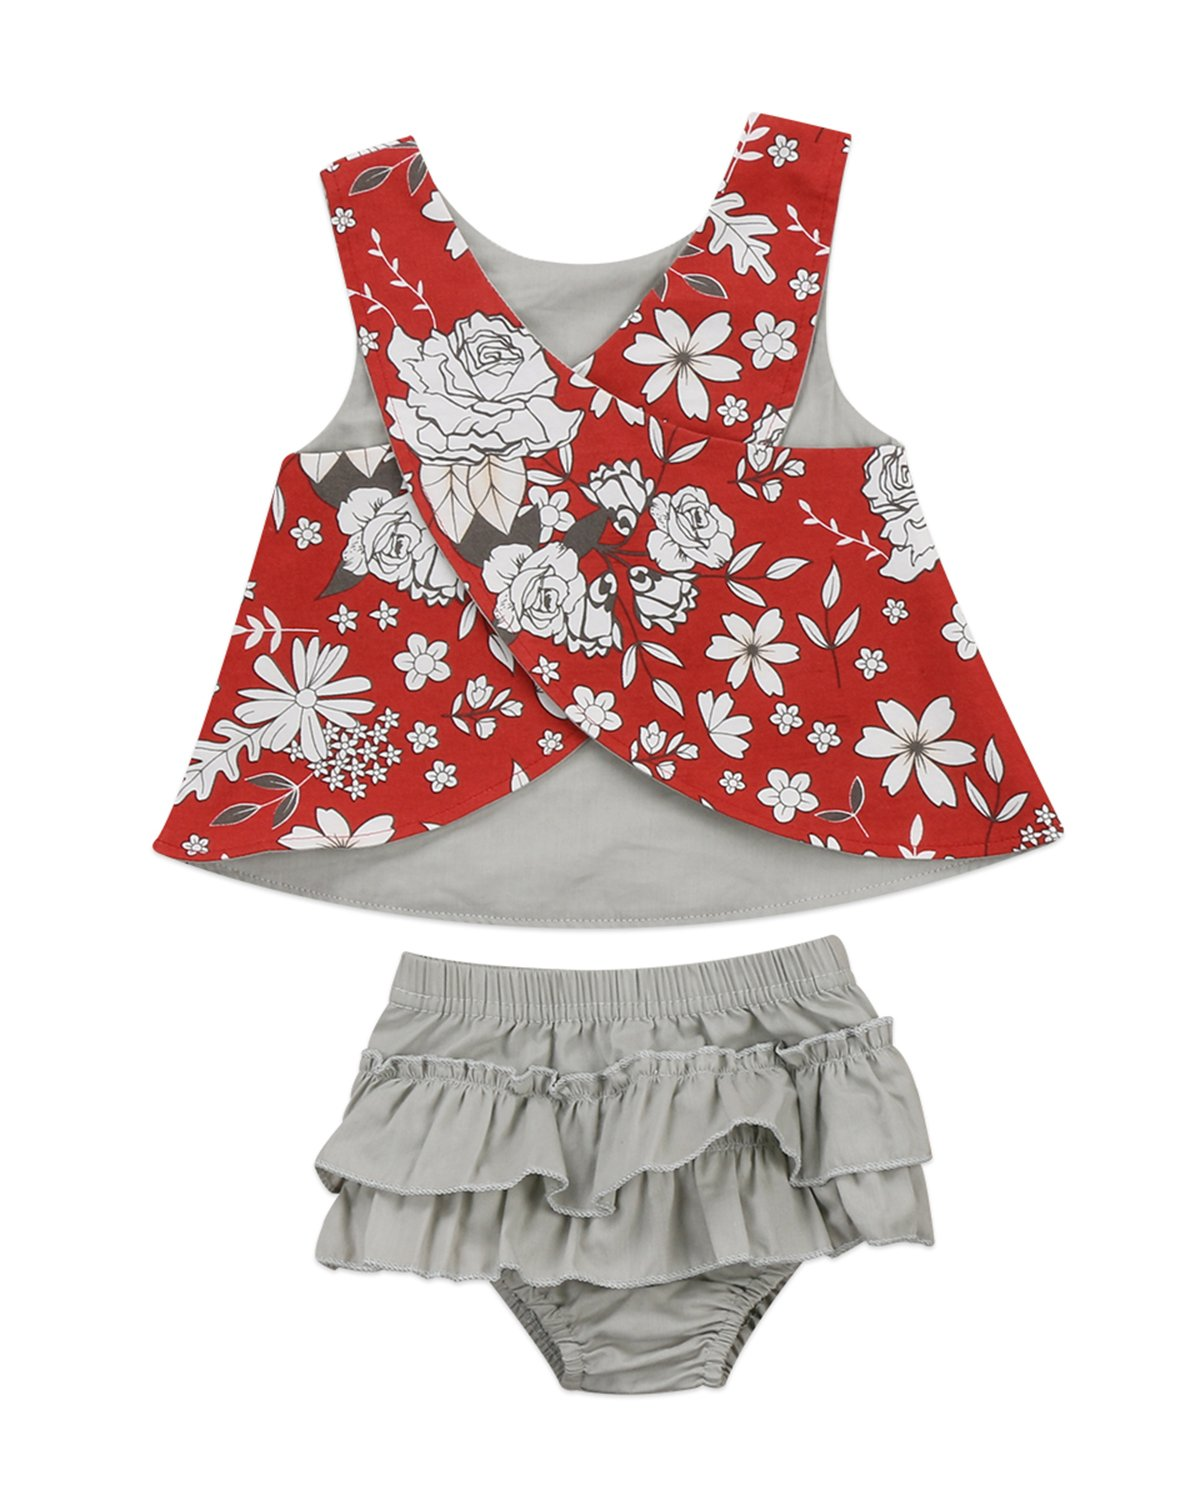 Infant Baby Girls Sleeveless Floral Vest Tops+Ruffle Tassel Short Pants Outfit